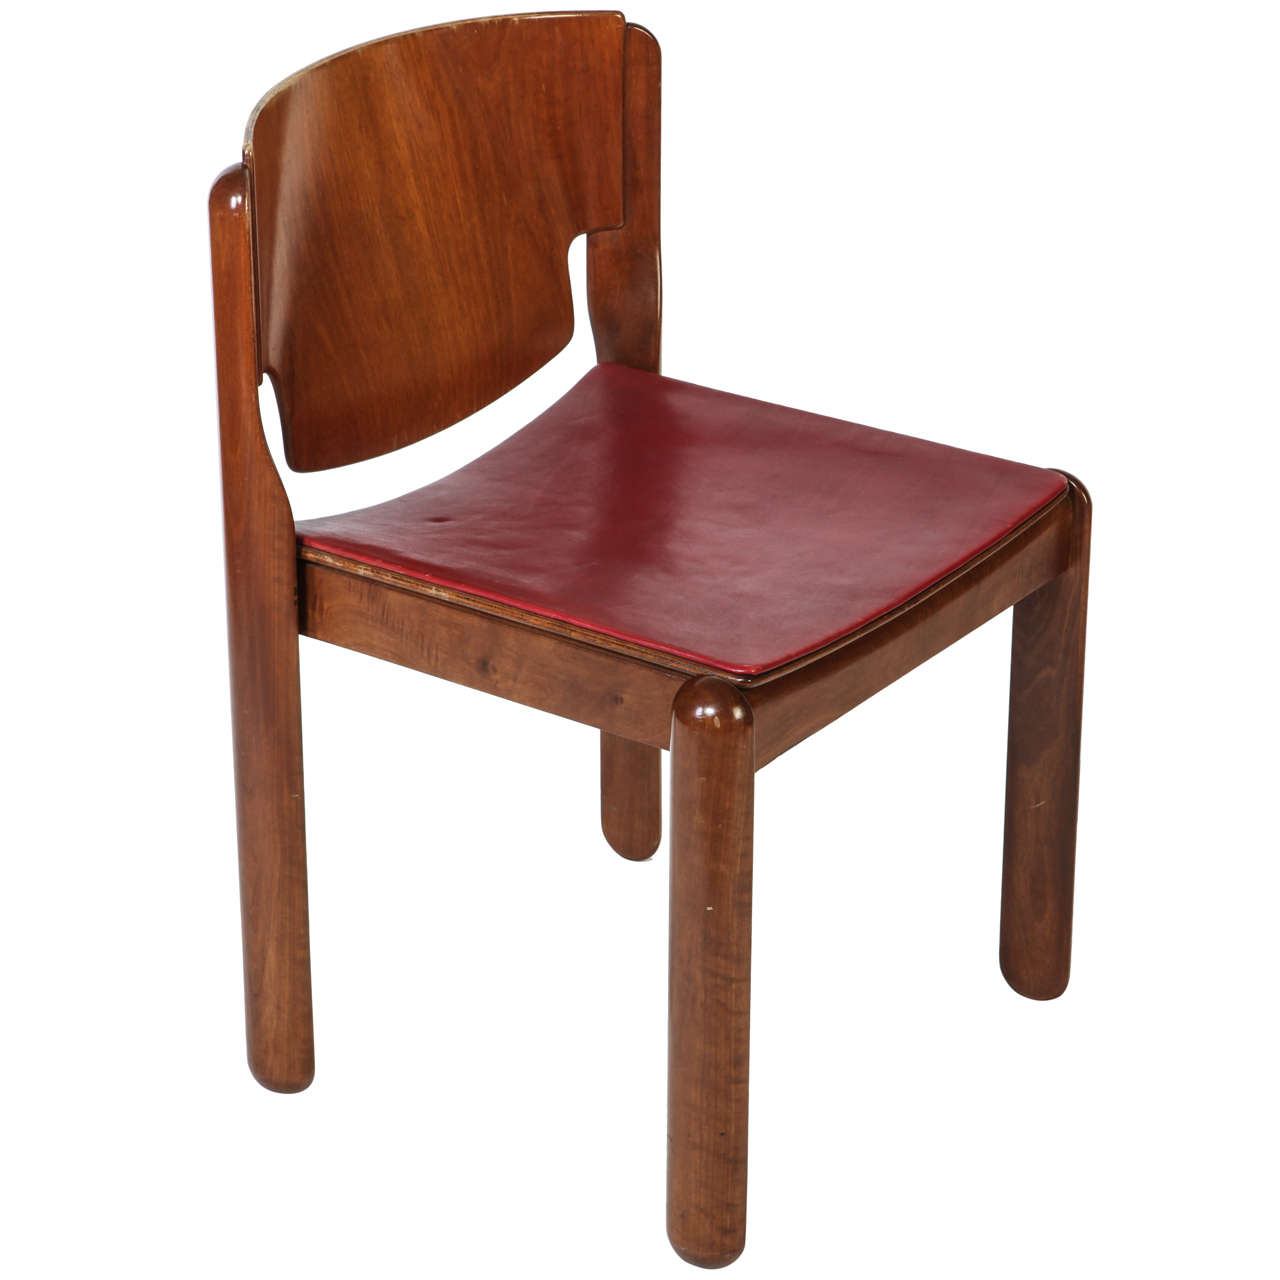 Luxury Leather Chairs chair model 122vico magistretti for sale at 1stdibs